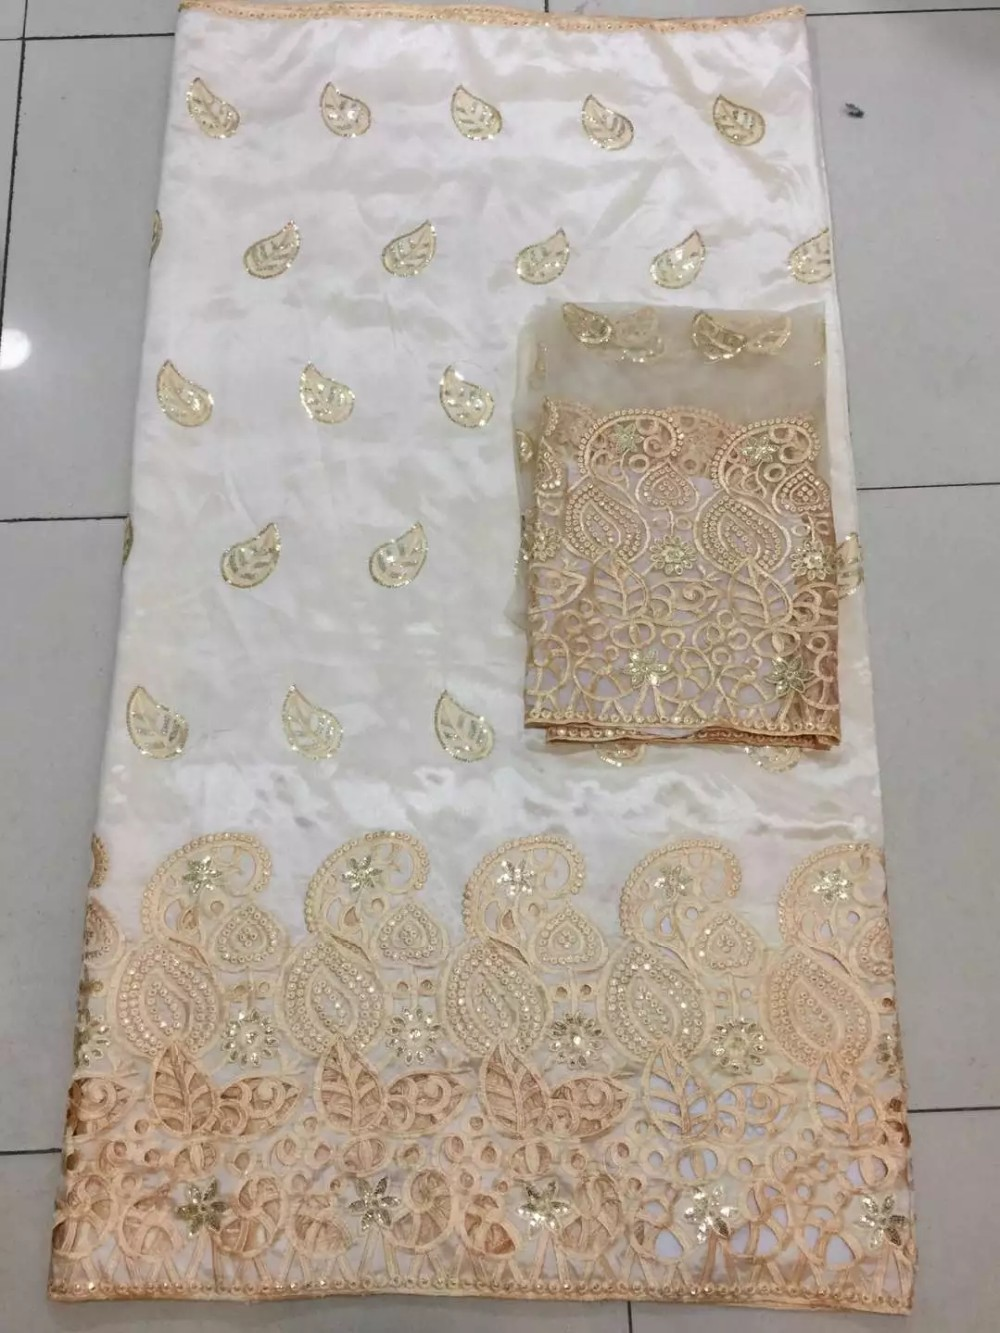 2016 Top quality distinctive design embroidered George lace fabric with stones for women dresses 5yards/lot